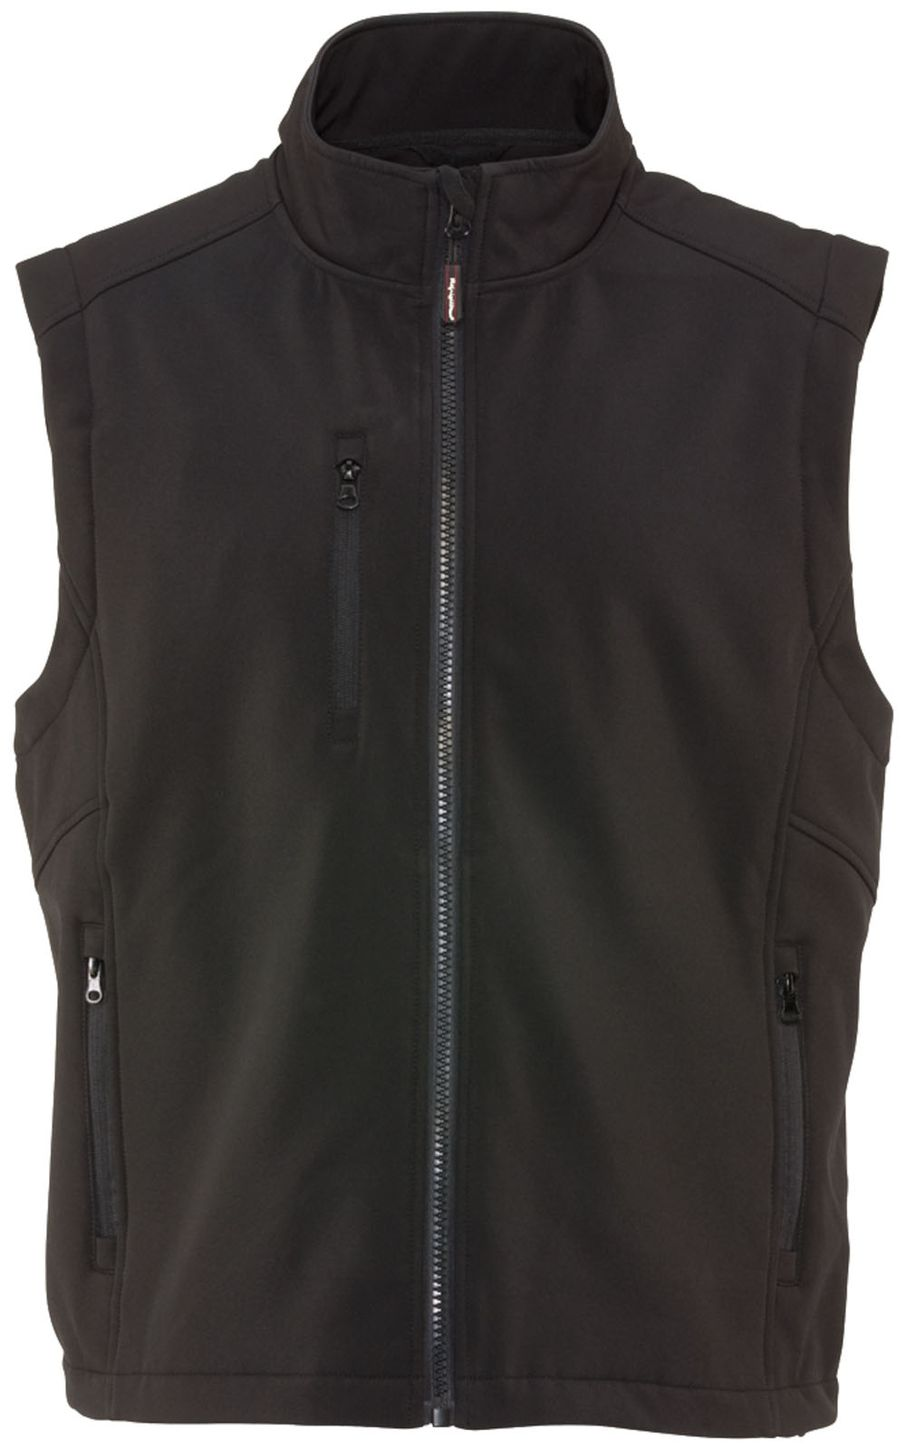 RefrigiWear 0494 Cold Weather Softshell Vest Front